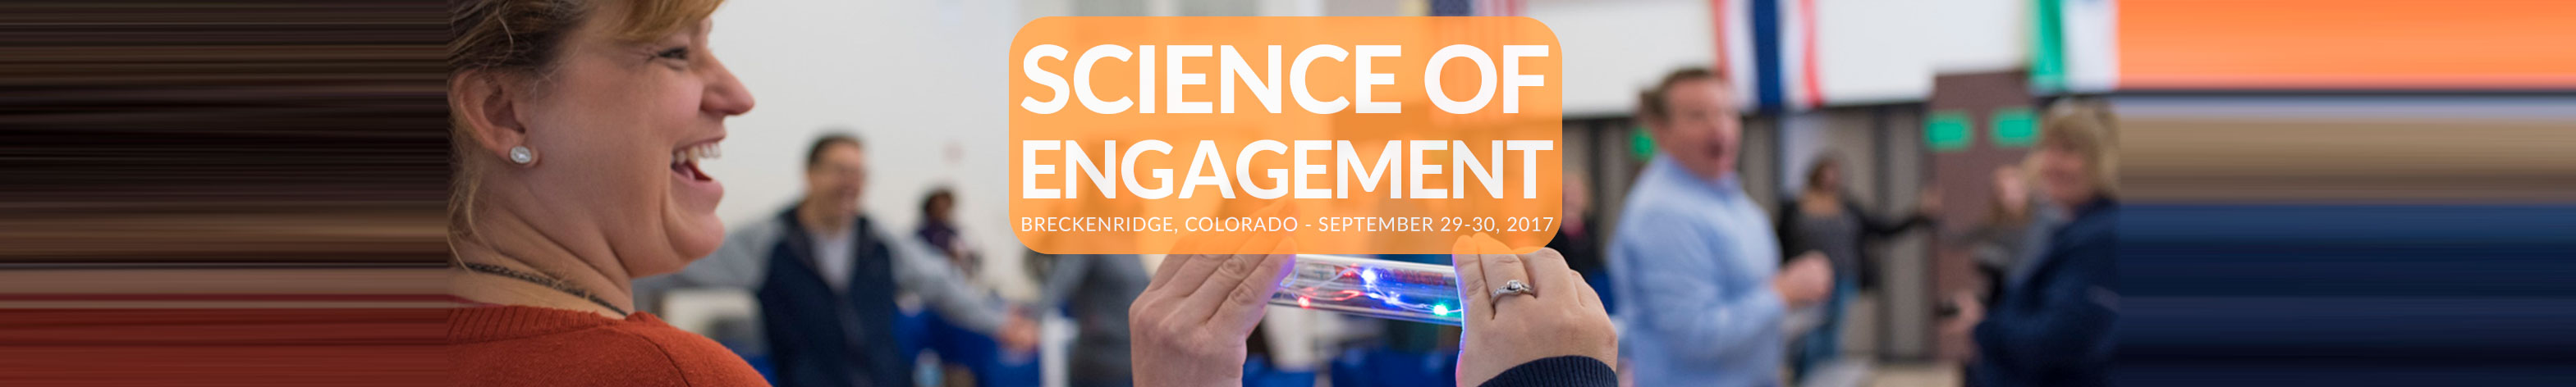 Science of Engagement Home Banner